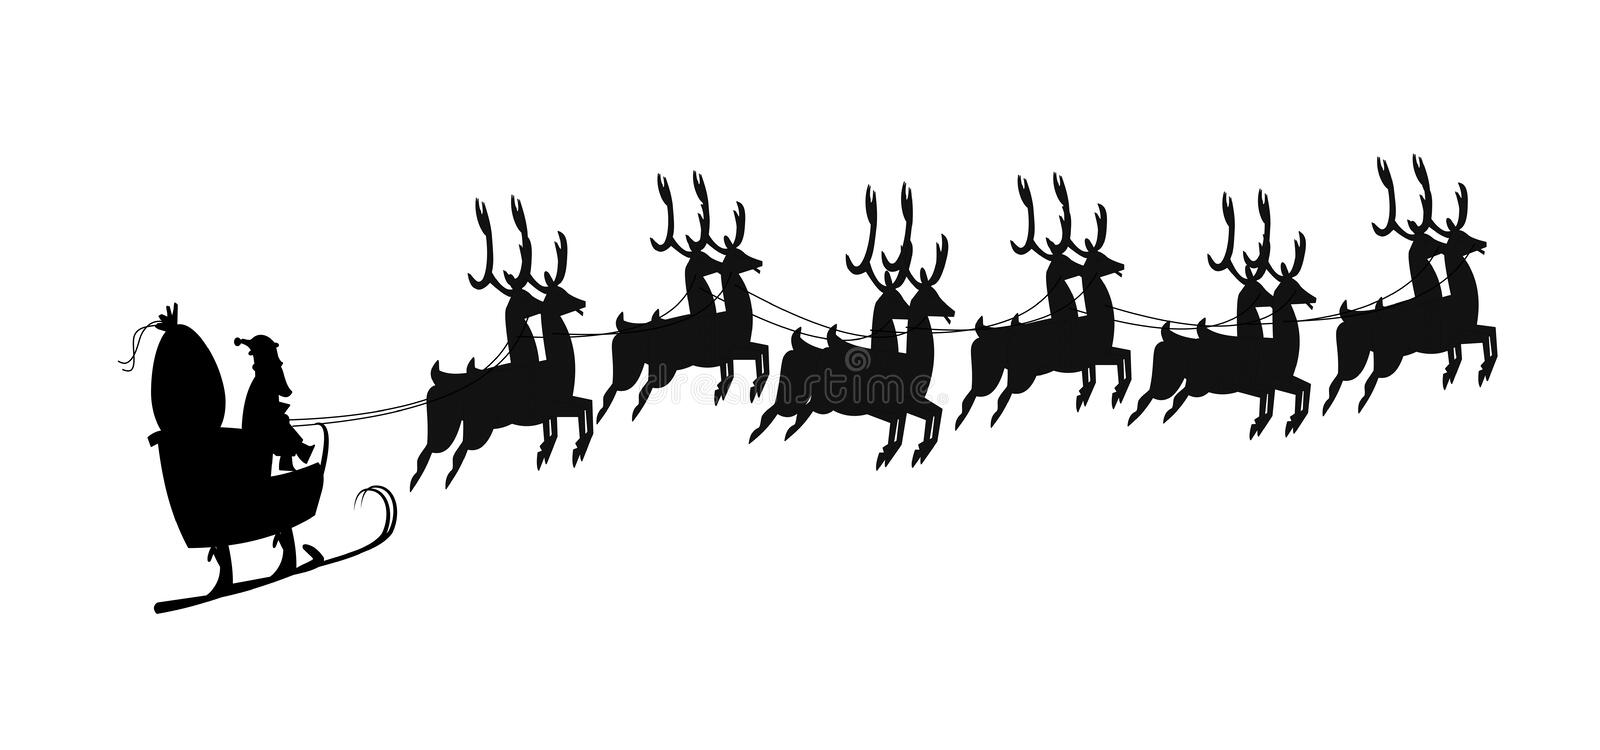 Santa template in silhouette. Santa in black silhouette with 12 reindeer over white stock illustration